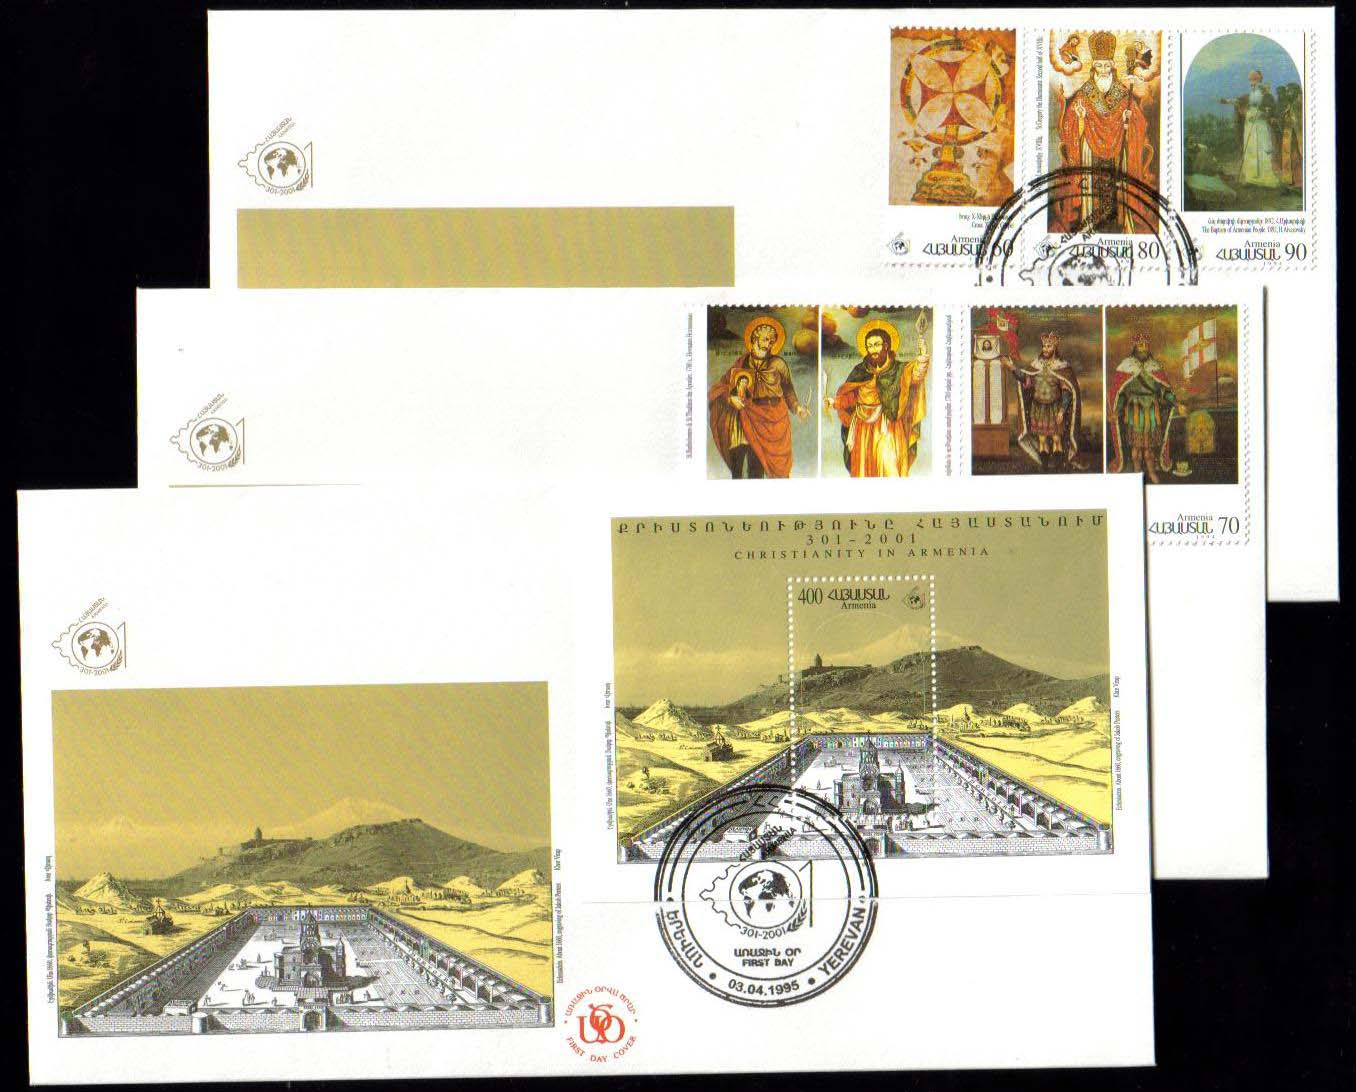 <Font 2-047g>047-51, FDC, Christianity in Armenia, Complete set of 5 and the S/S on three FDC, signed by Souren Arakelov Vice-President of Armenia 2001.  (50 complete sets were signed on the first day of the exhibition), Scott #487-91. <p> <a href=&quot;/images/ArmenianStamps-047-052-FDC-Set.jpg&quot;>   <font color=green><b>View the image</b></a></font>